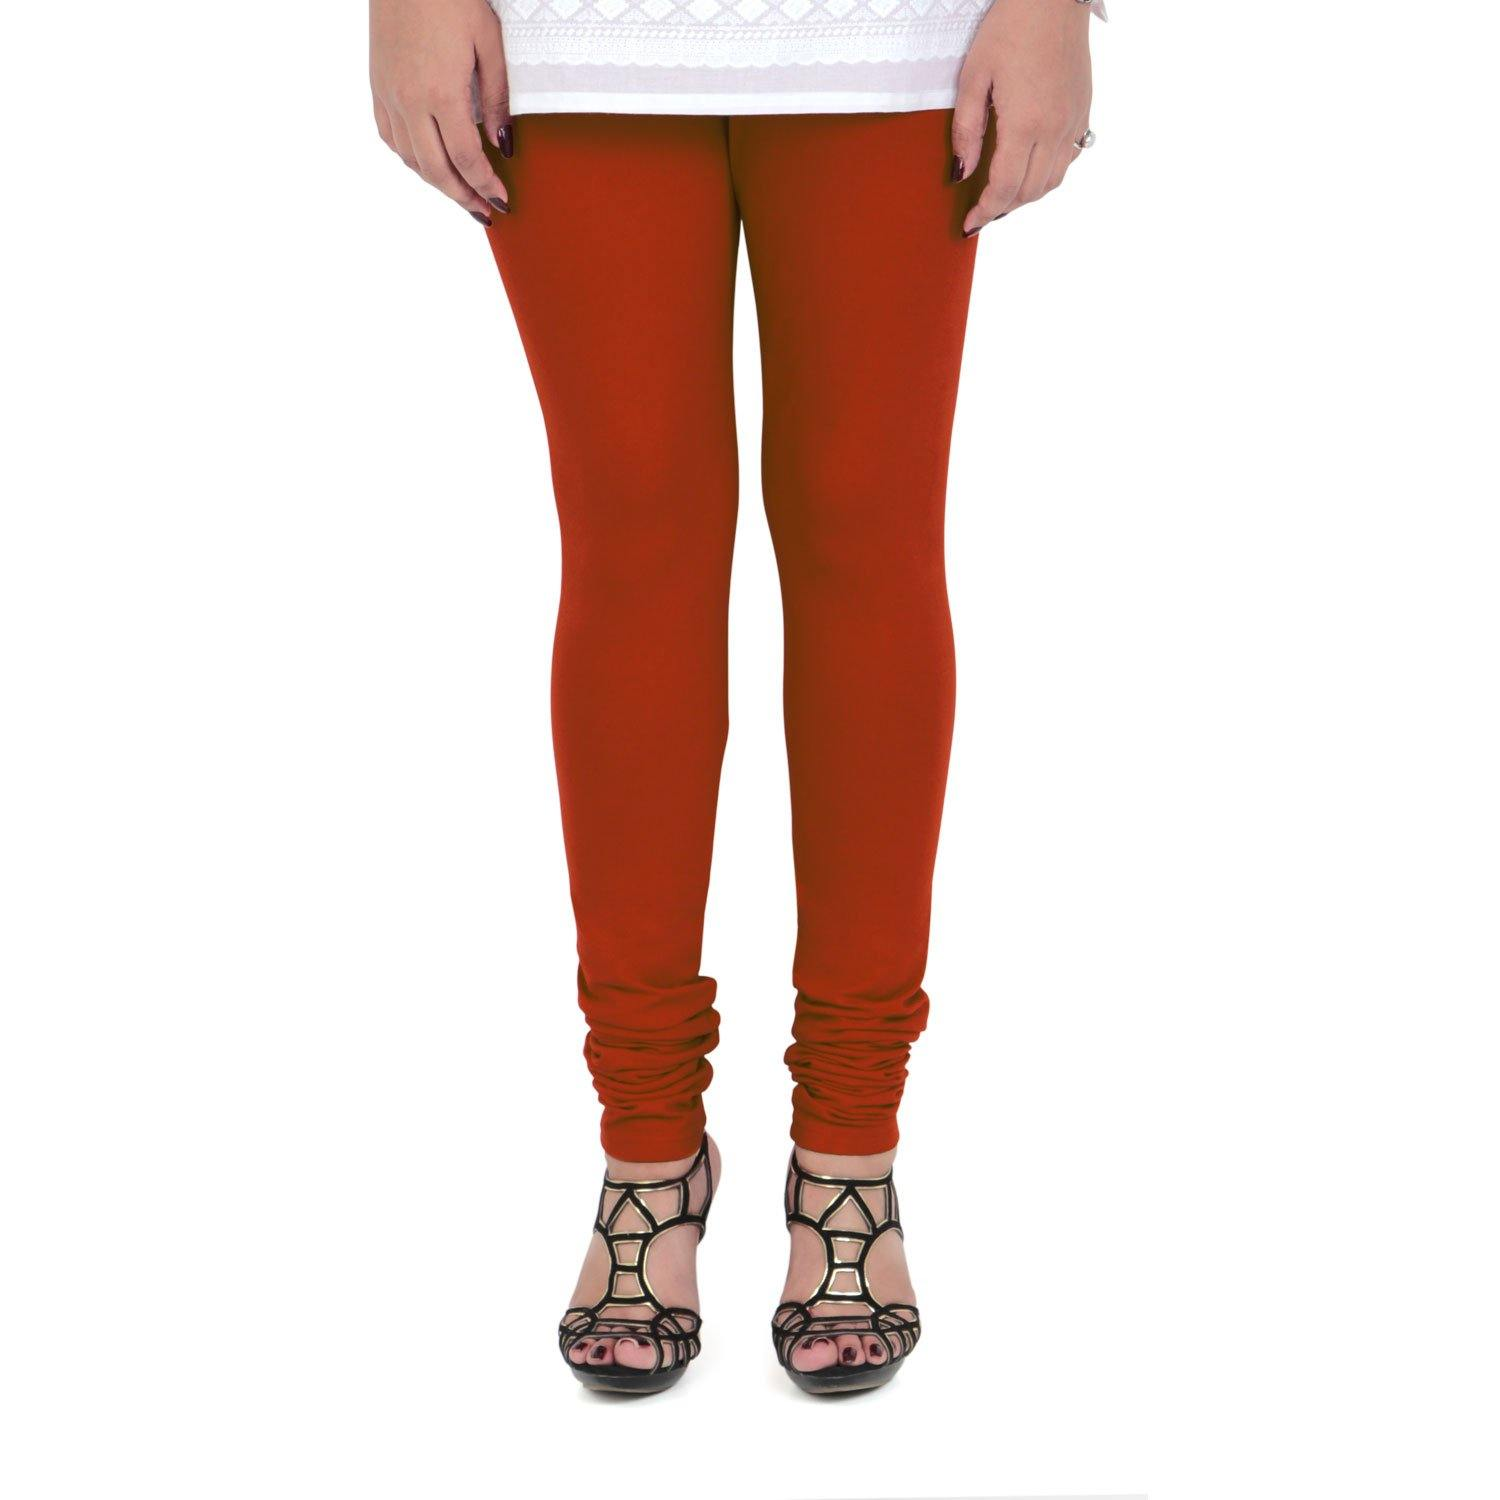 Vami Women's Cotton Stretchable Churidar Legging - Scarlet Red